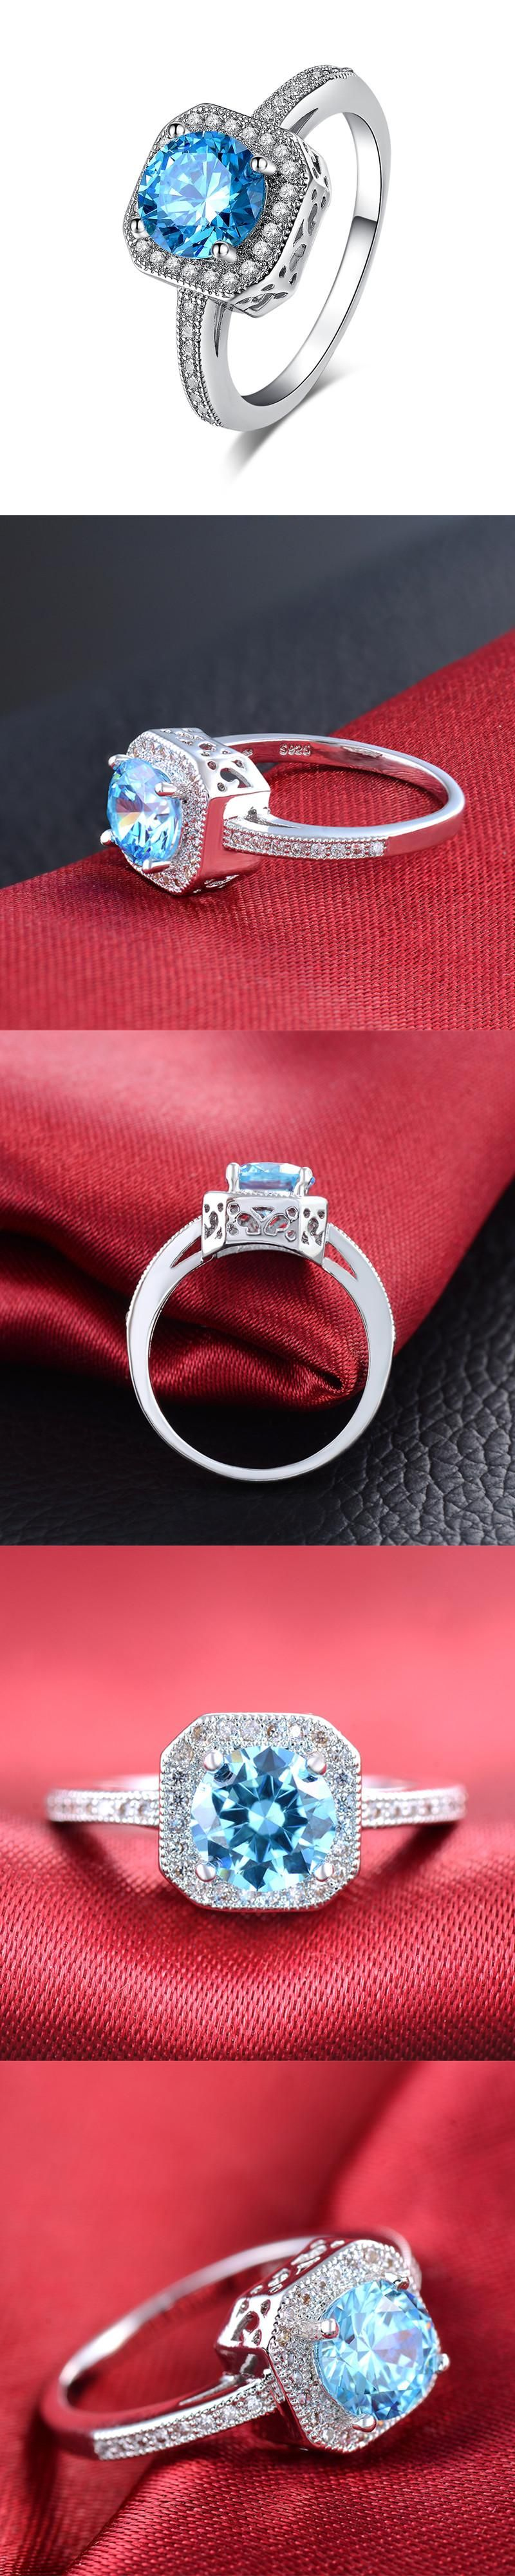 Simulated Blue Jewelry White Gold-color CZ stone Wedding Rings for ...